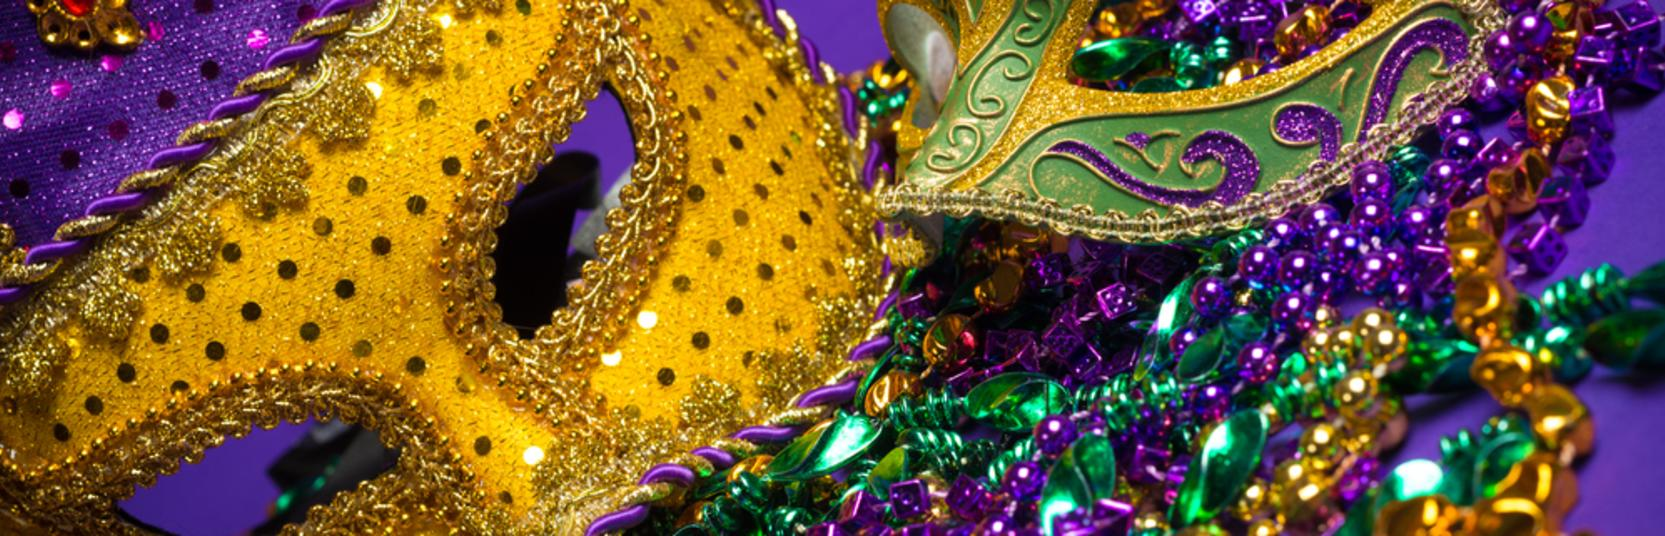 Mardi Gras at Longtable